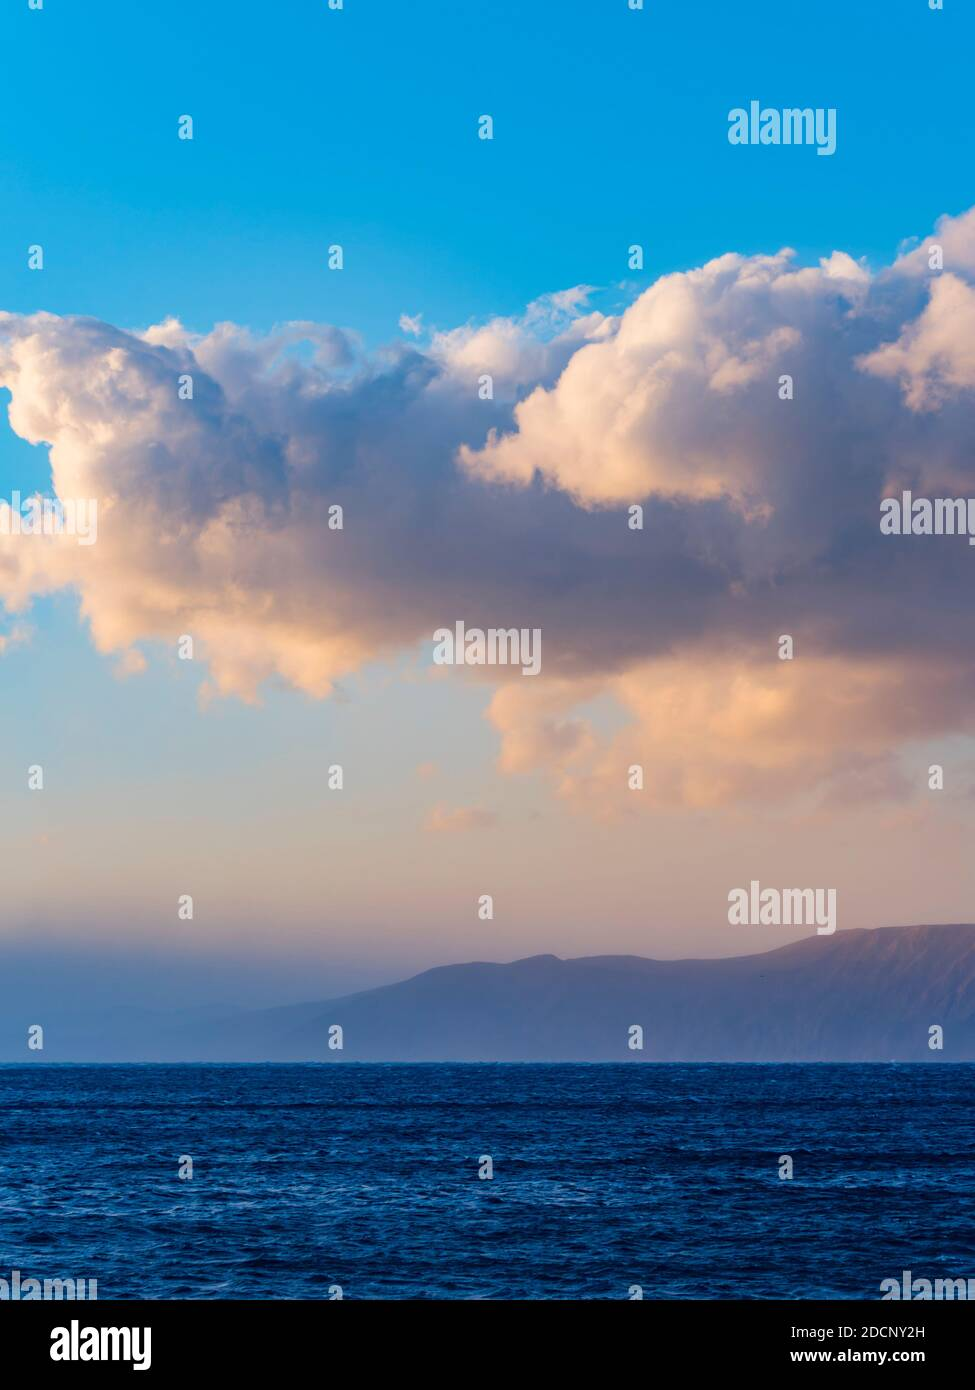 Dawn early morning distant sea surface coastline milky white floating like fog before storm severe weather called jugo near Novi Vinodolski in Croatia Stock Photo